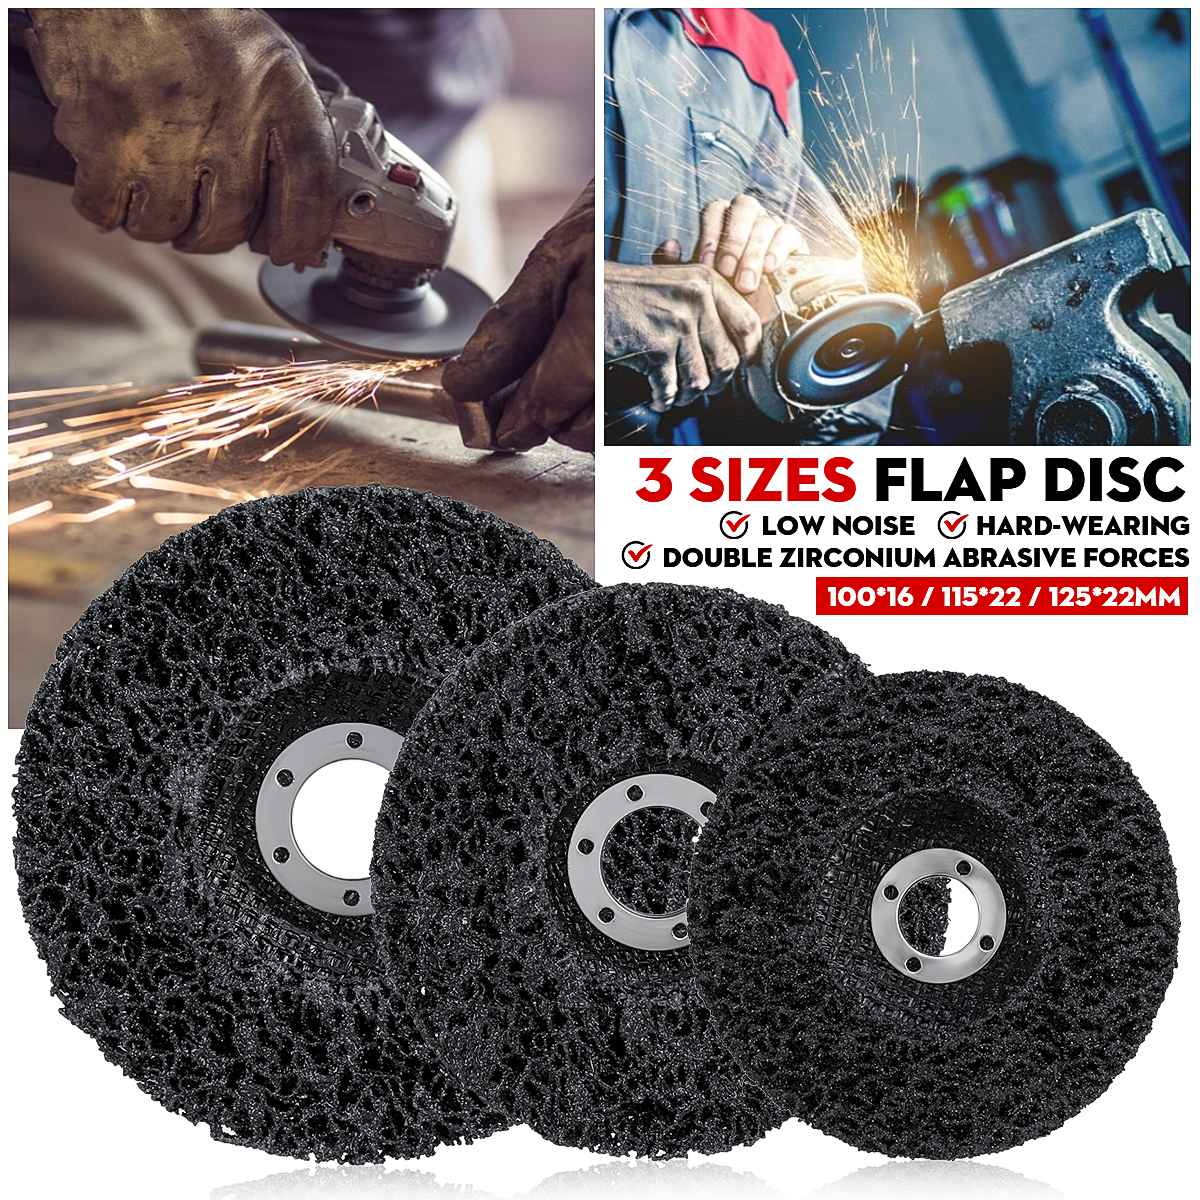 100/115/125mm Strip Disc Abrasive Wheel Paint Rust Remover Clean Grinding Wheels Durable Angle Grinder For Car Truck Motorcycle